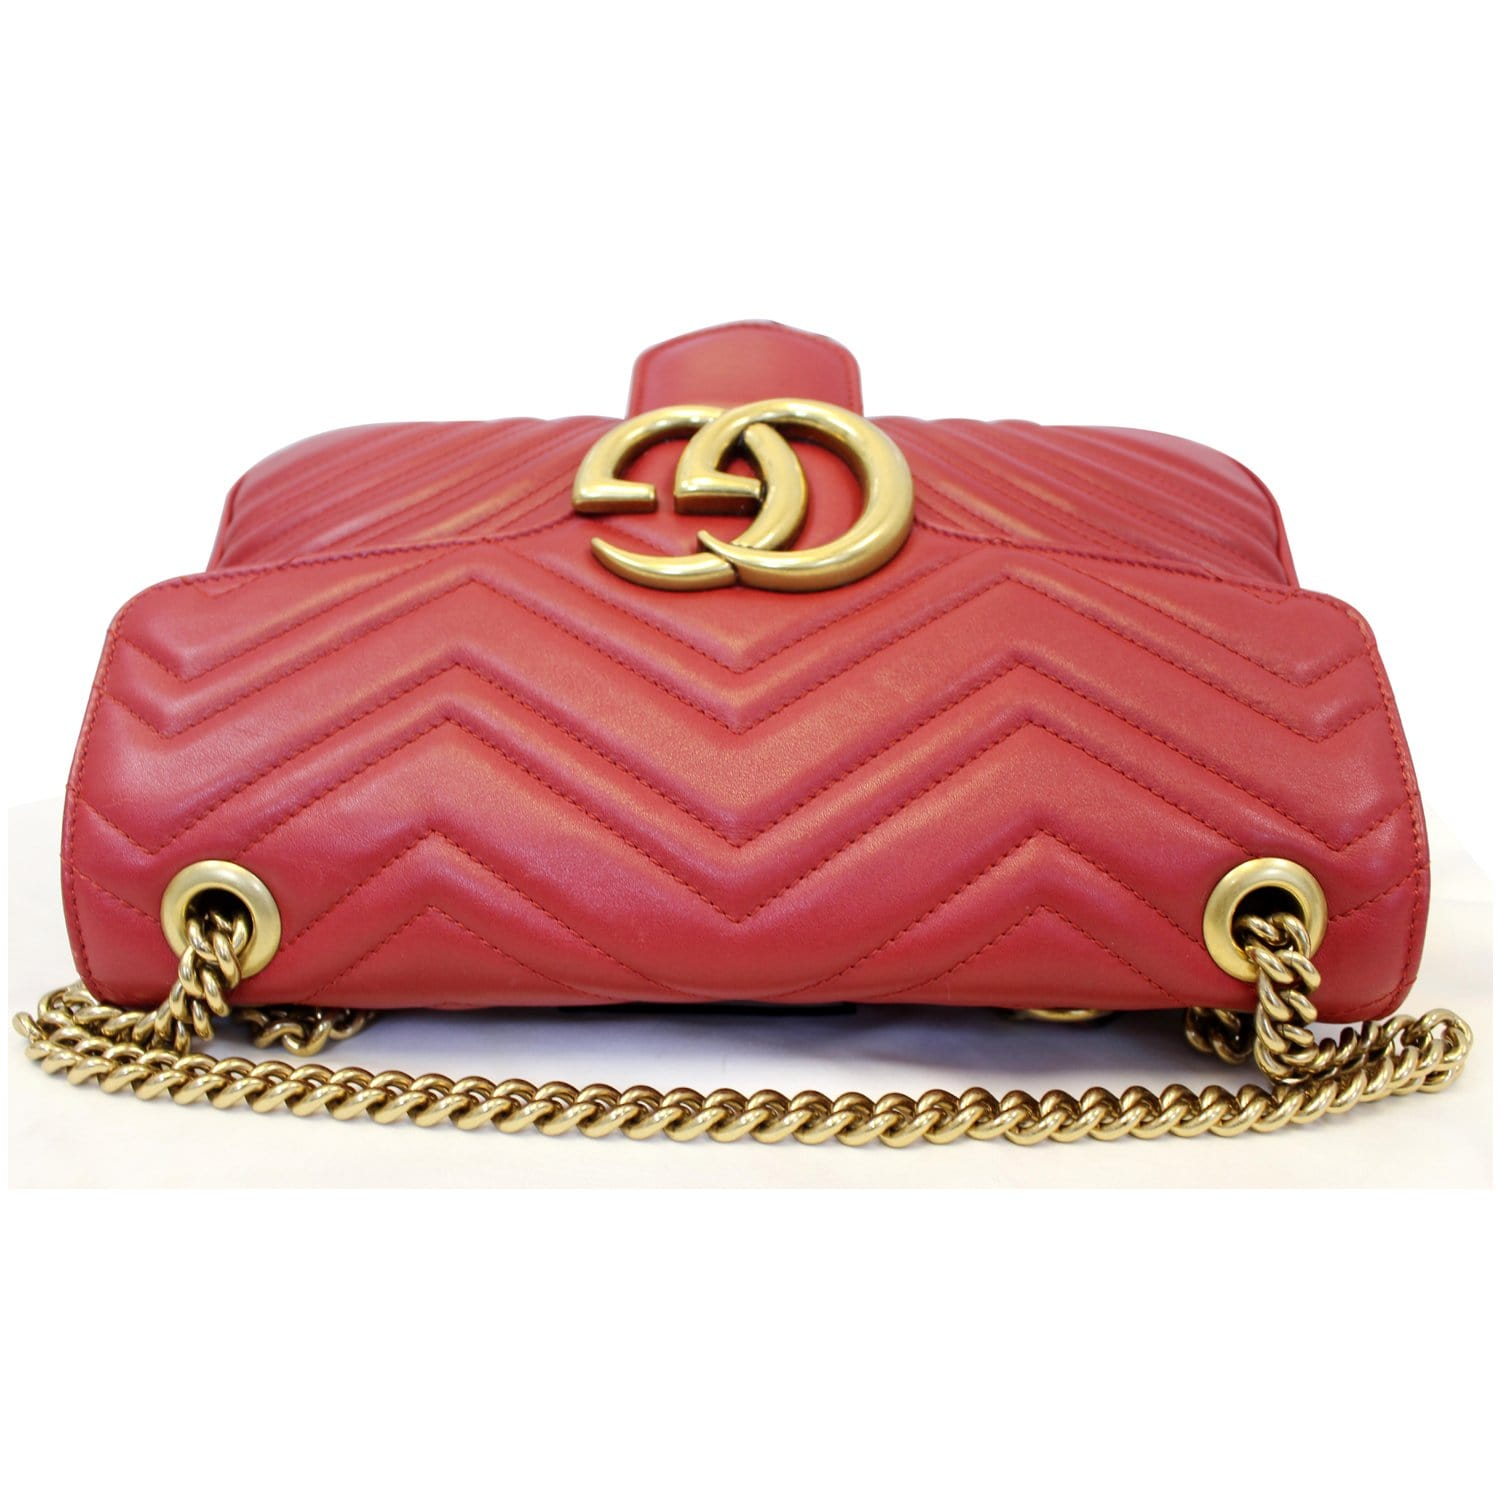 84d2658fa GUCCI GG Marmont Matelasse Leather Shoulder Bag Red 443496-US